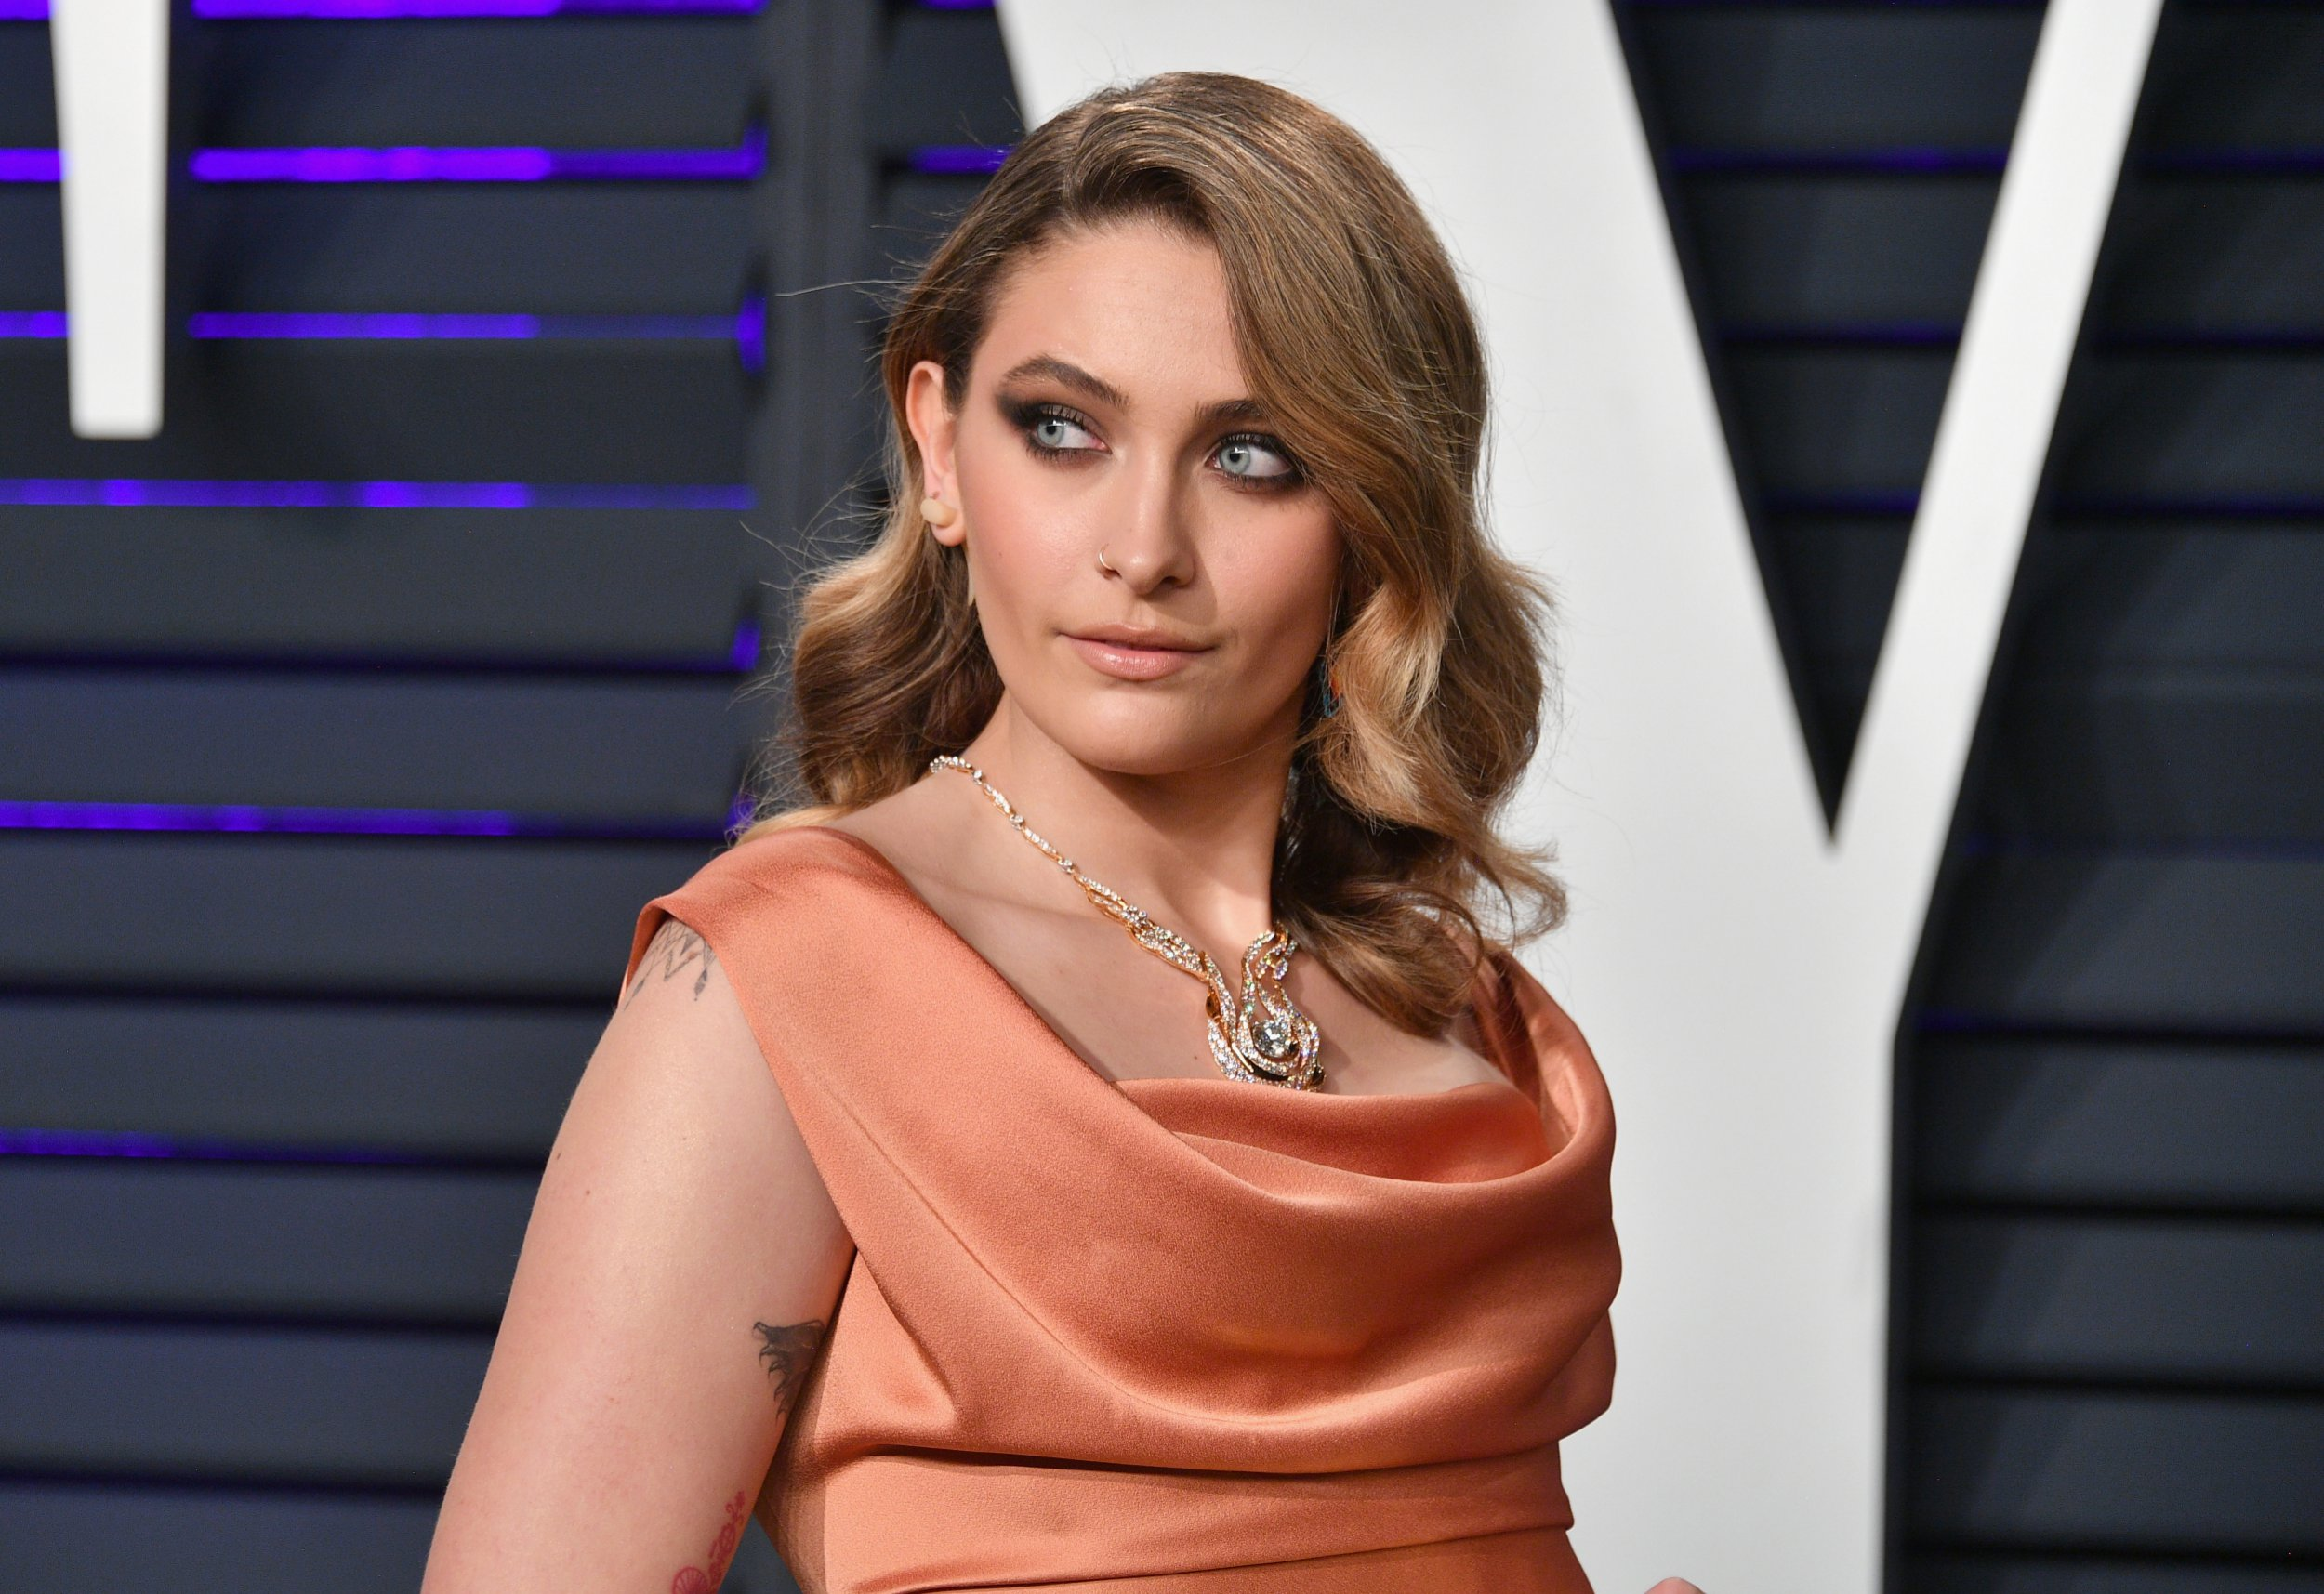 Paris Jackson hits back at claims she is worried about Leaving Neverland